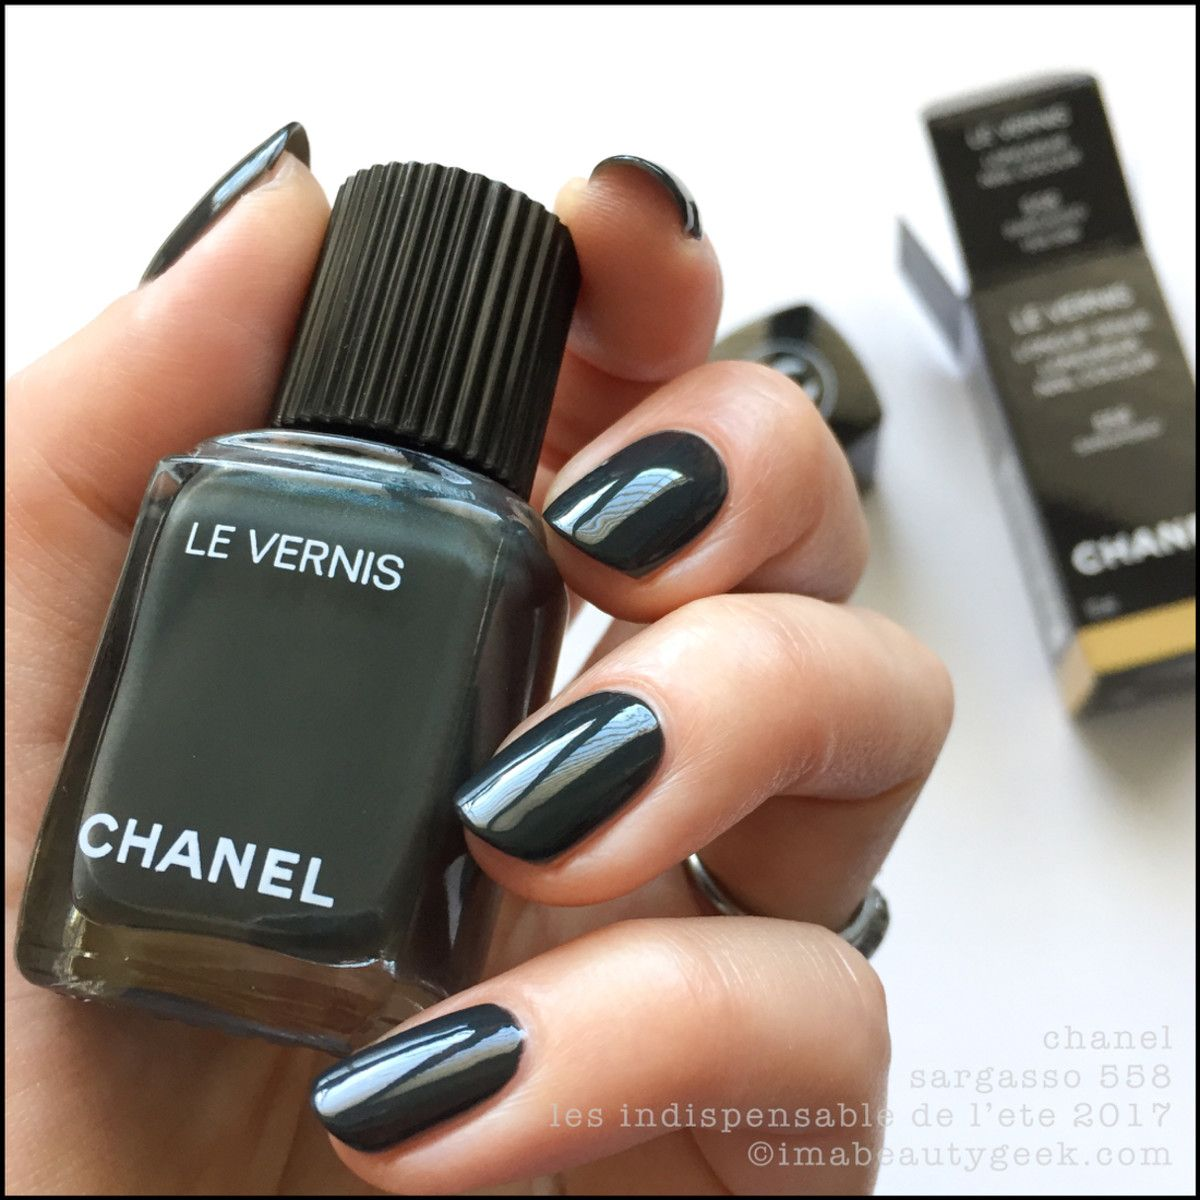 Chanel Sargo 558 Summer 2017 Cruise Collection Le Vernis Nail Polish Latest